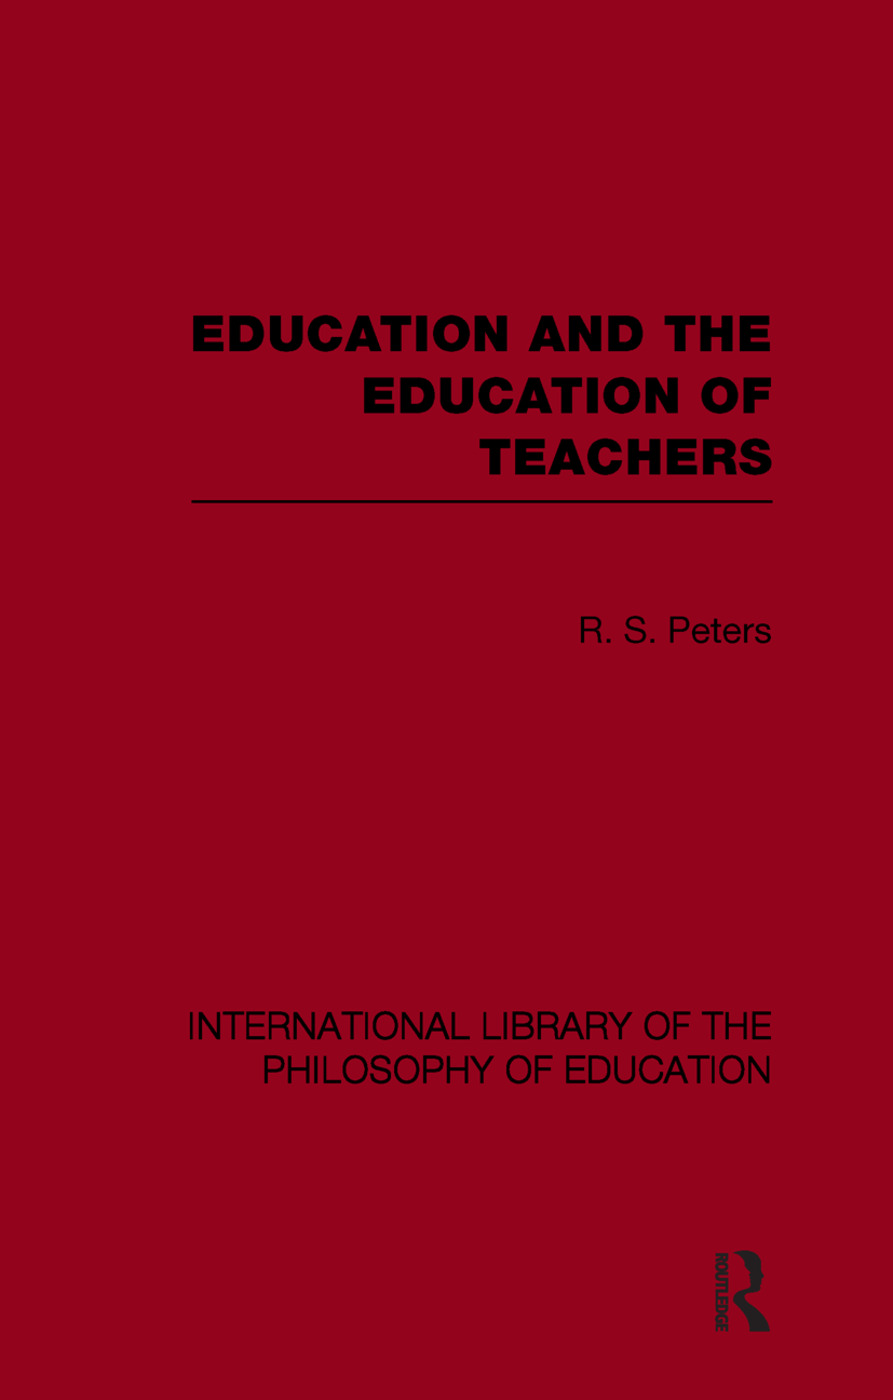 Education and the Education of Teachers (International Library of the Philosophy of Education volume 18): 1st Edition (Paperback) book cover